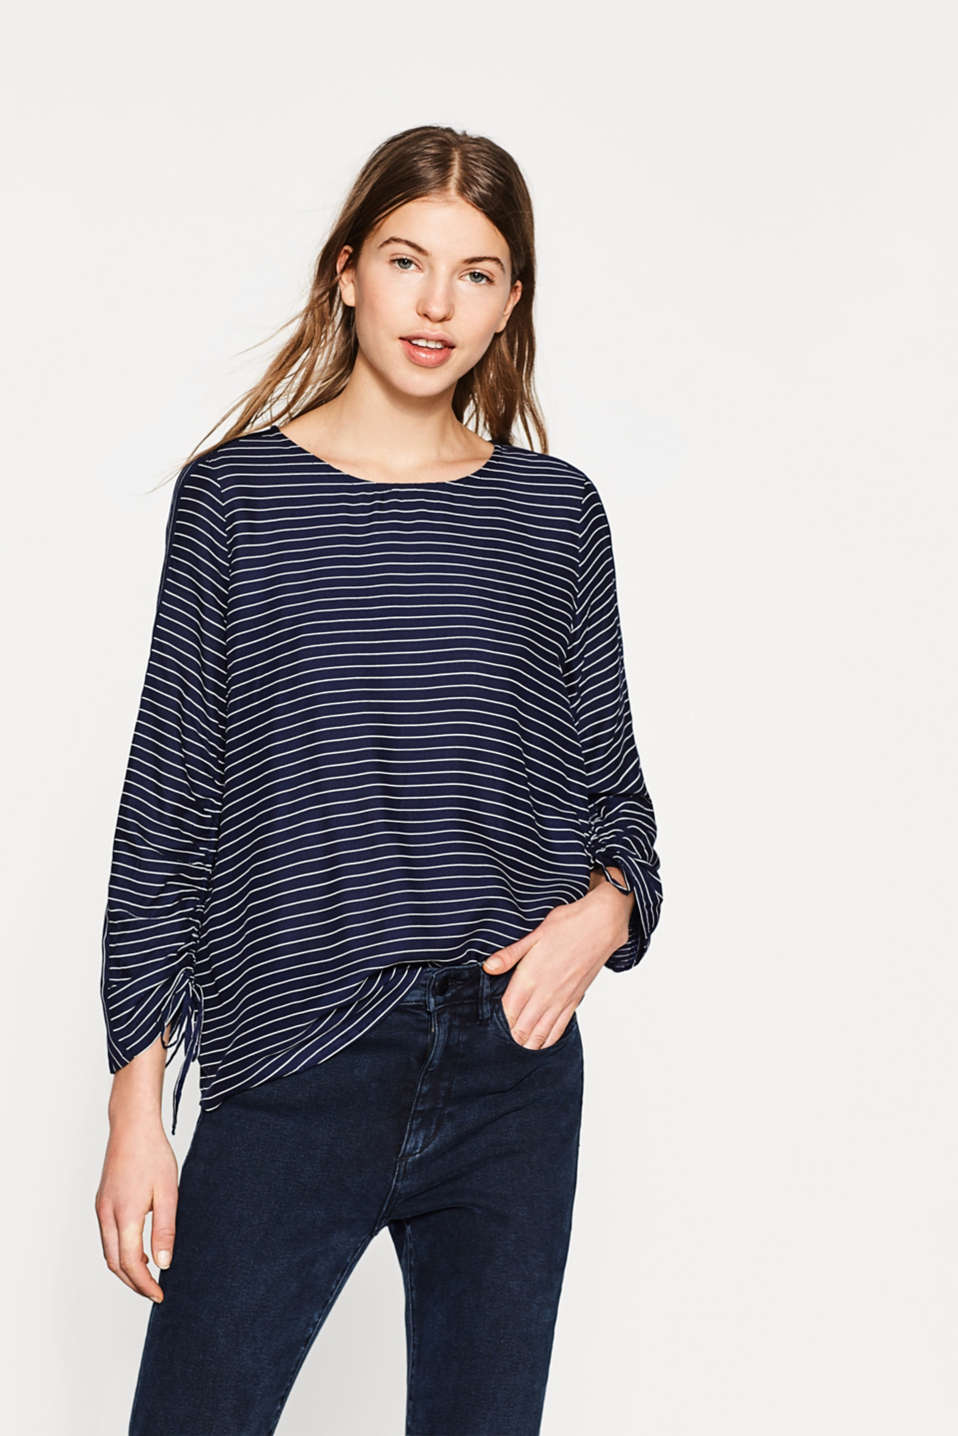 Esprit - Delicate striped blouse with gathers